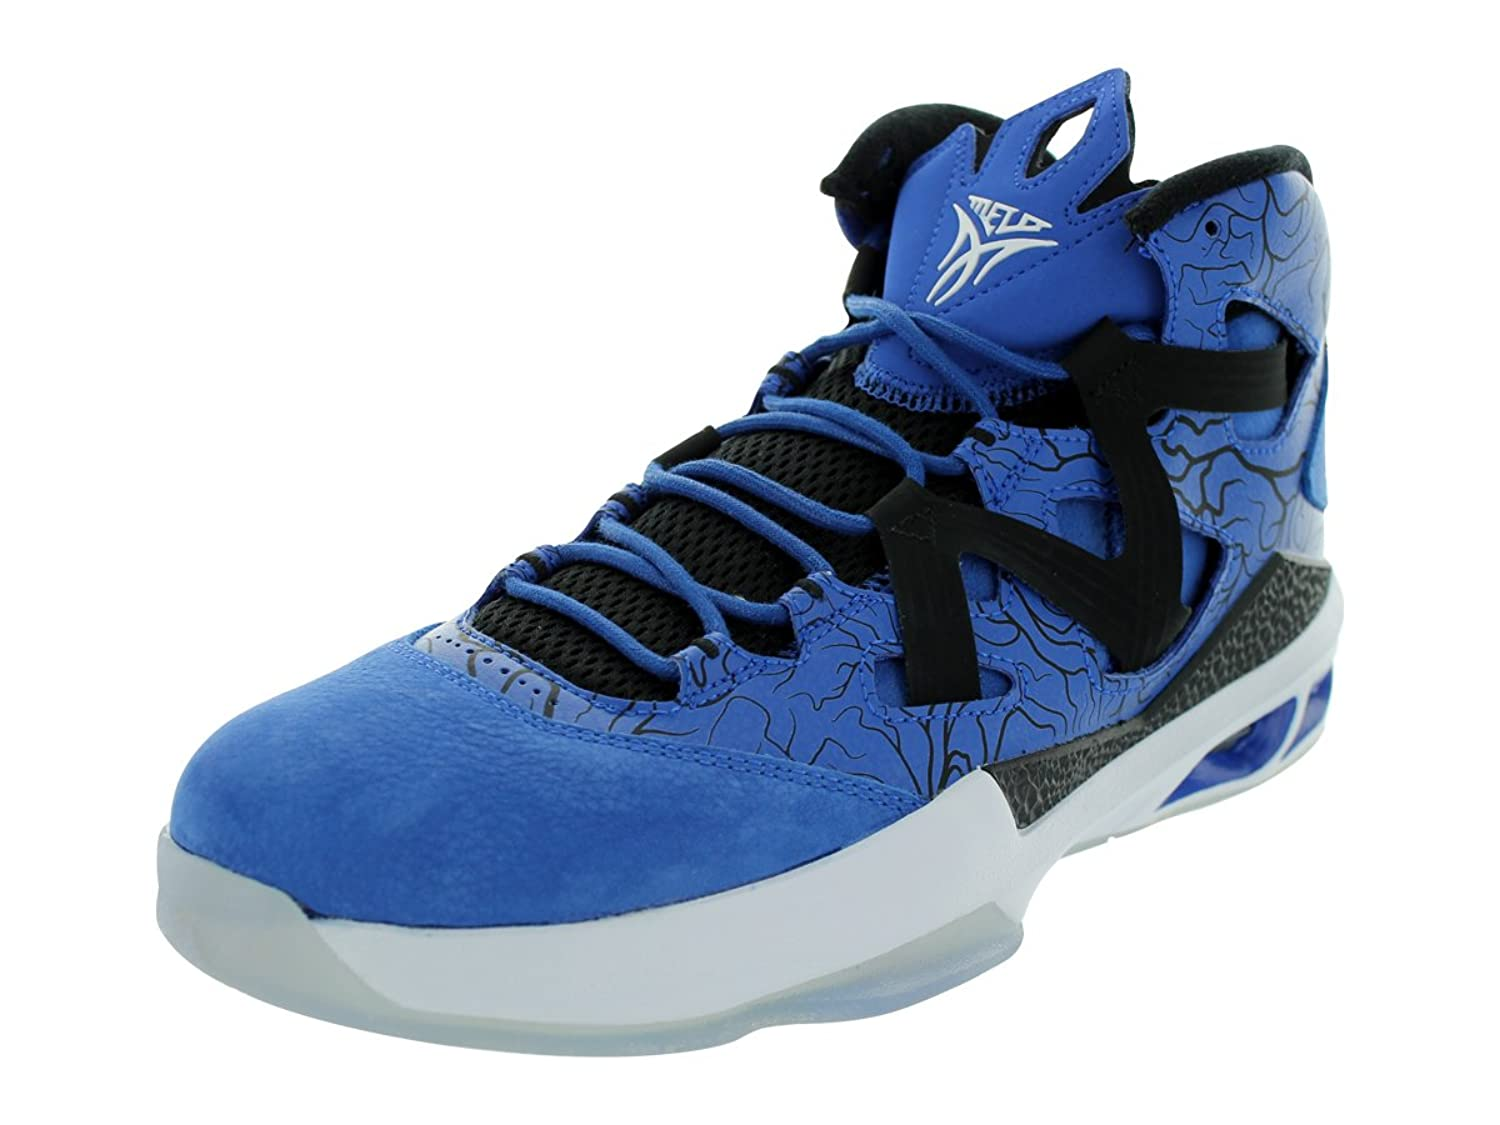 Nike Men's Jordan Melo M9 Game Royal/White/Black Basketball Shoes 9 Men US:  Amazon.in: Shoes & Handbags